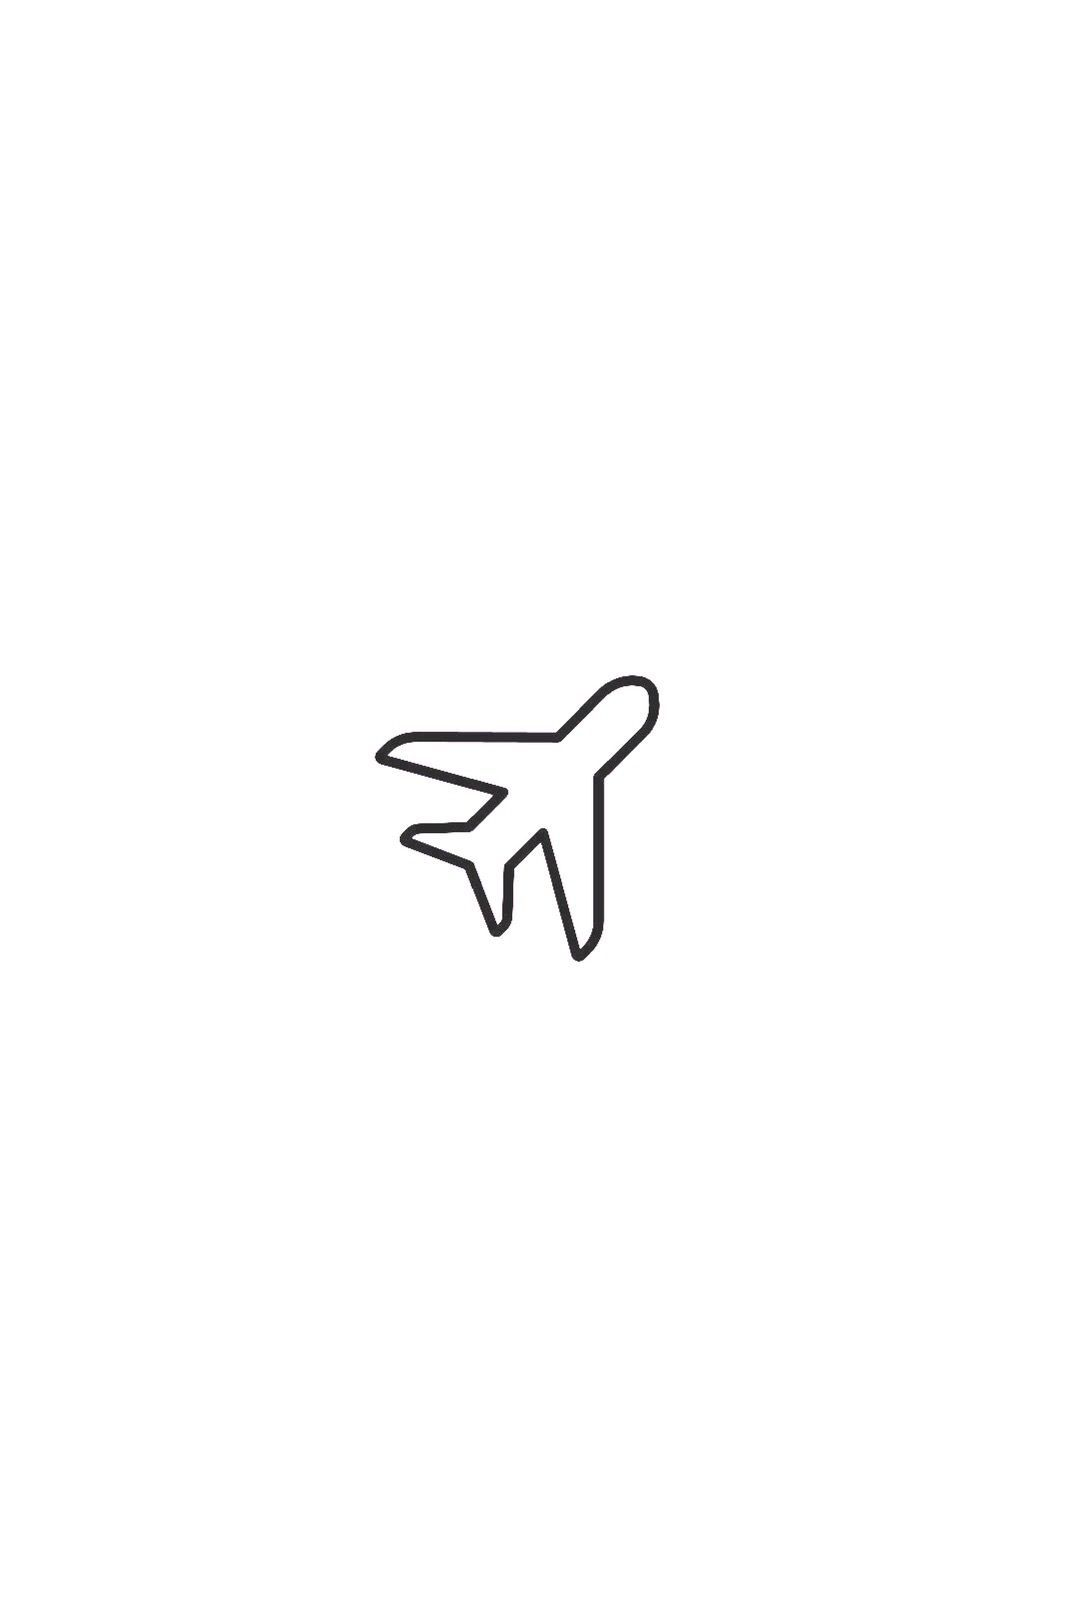 small airplane drawing easy